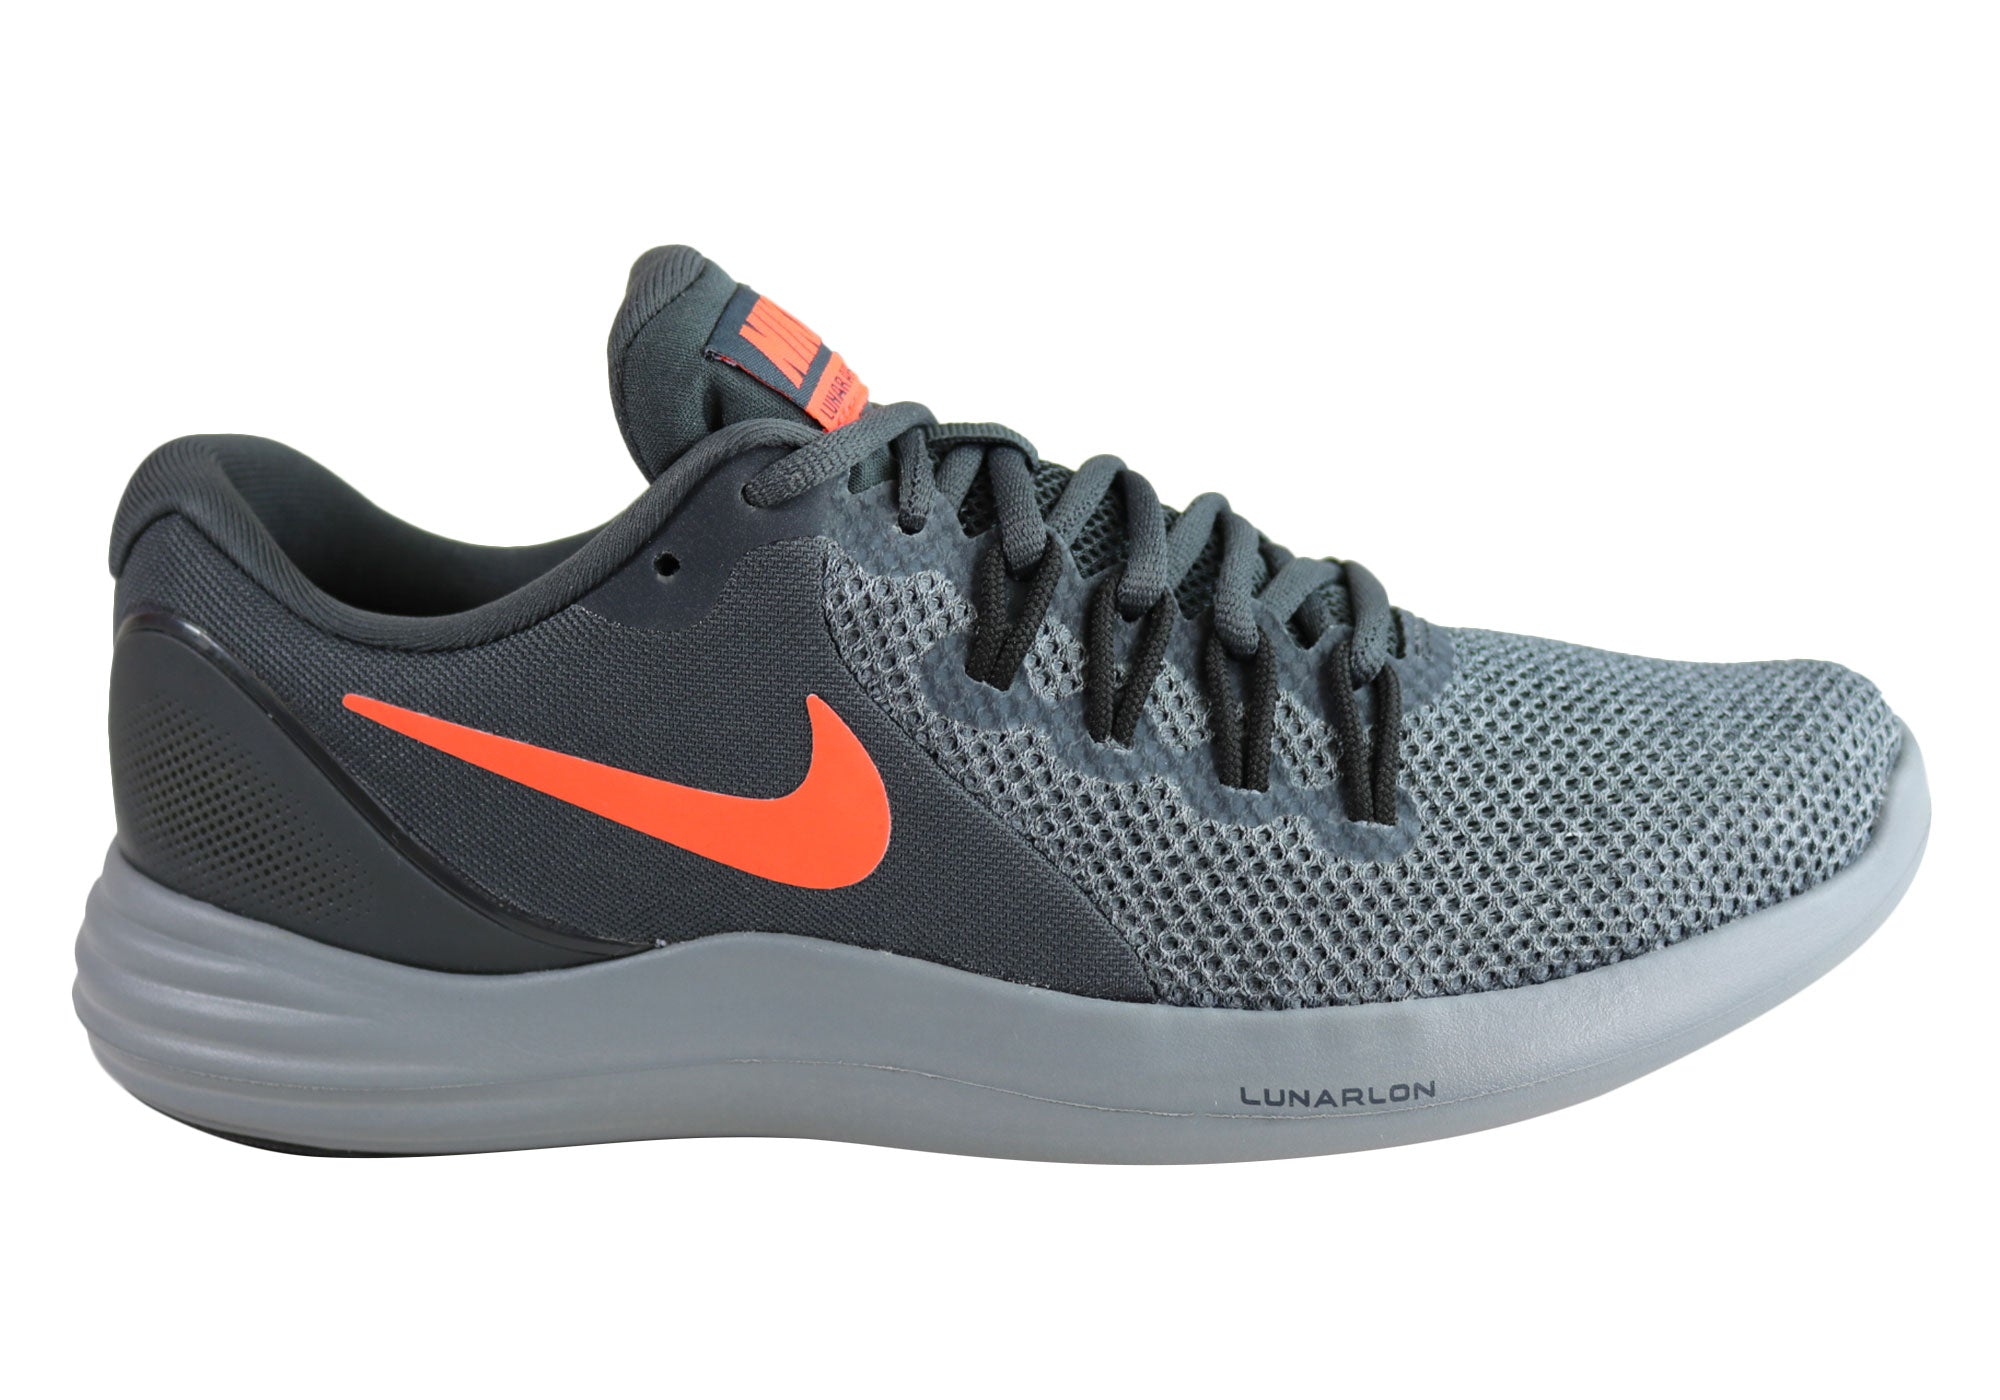 Details about Brand New Nike Lunar Apparent Mens Cushioned Light Weight Running Shoes